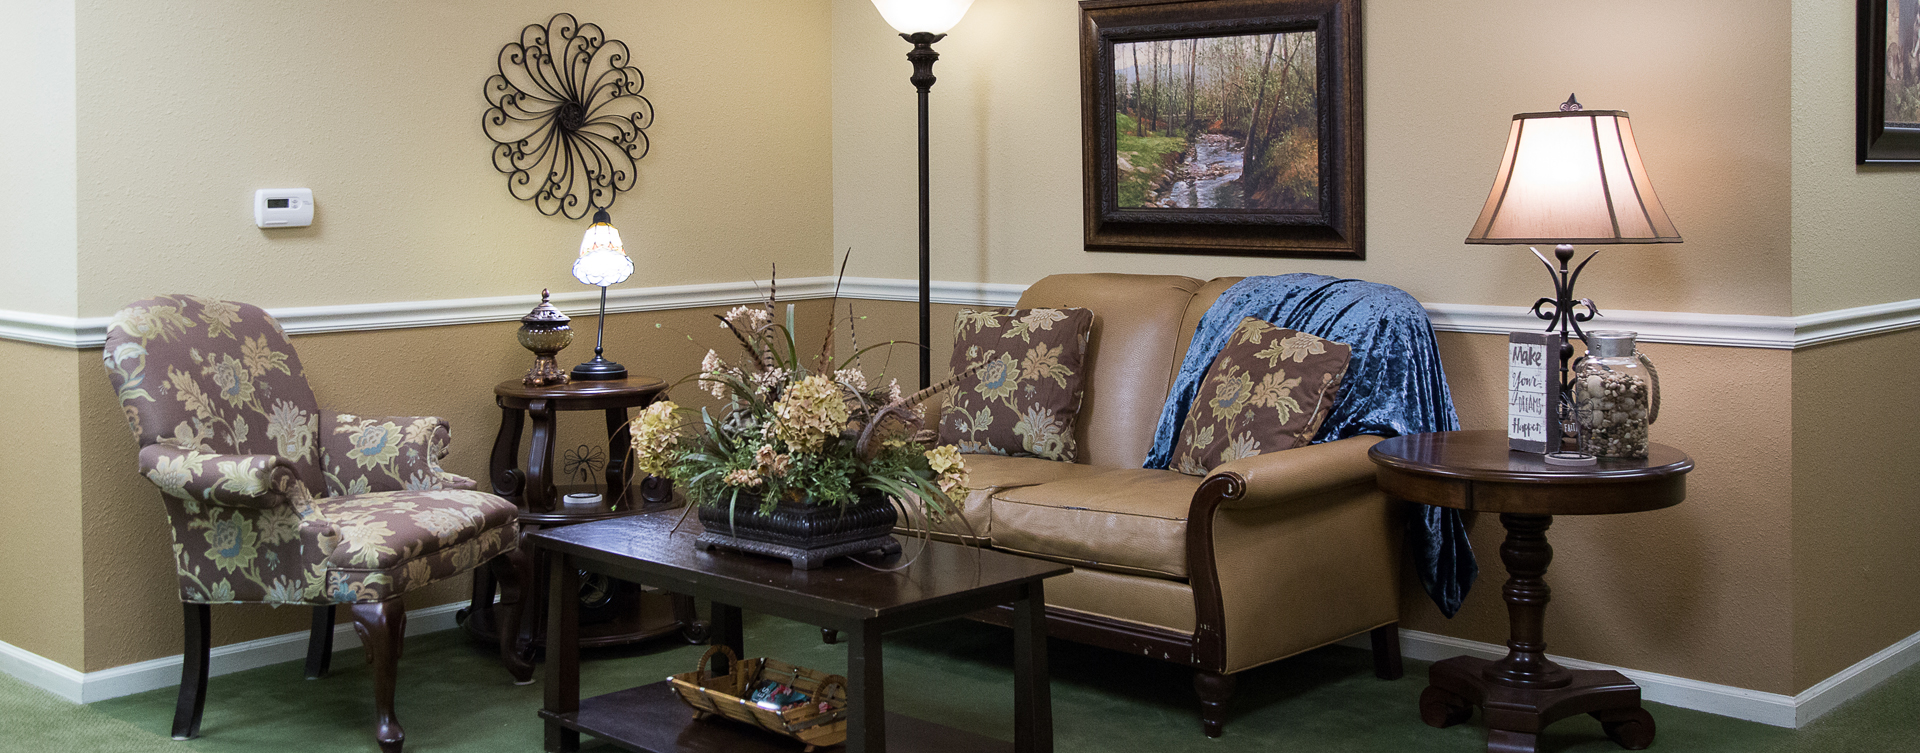 Enjoy a good book in the sitting area at Bickford of Moline